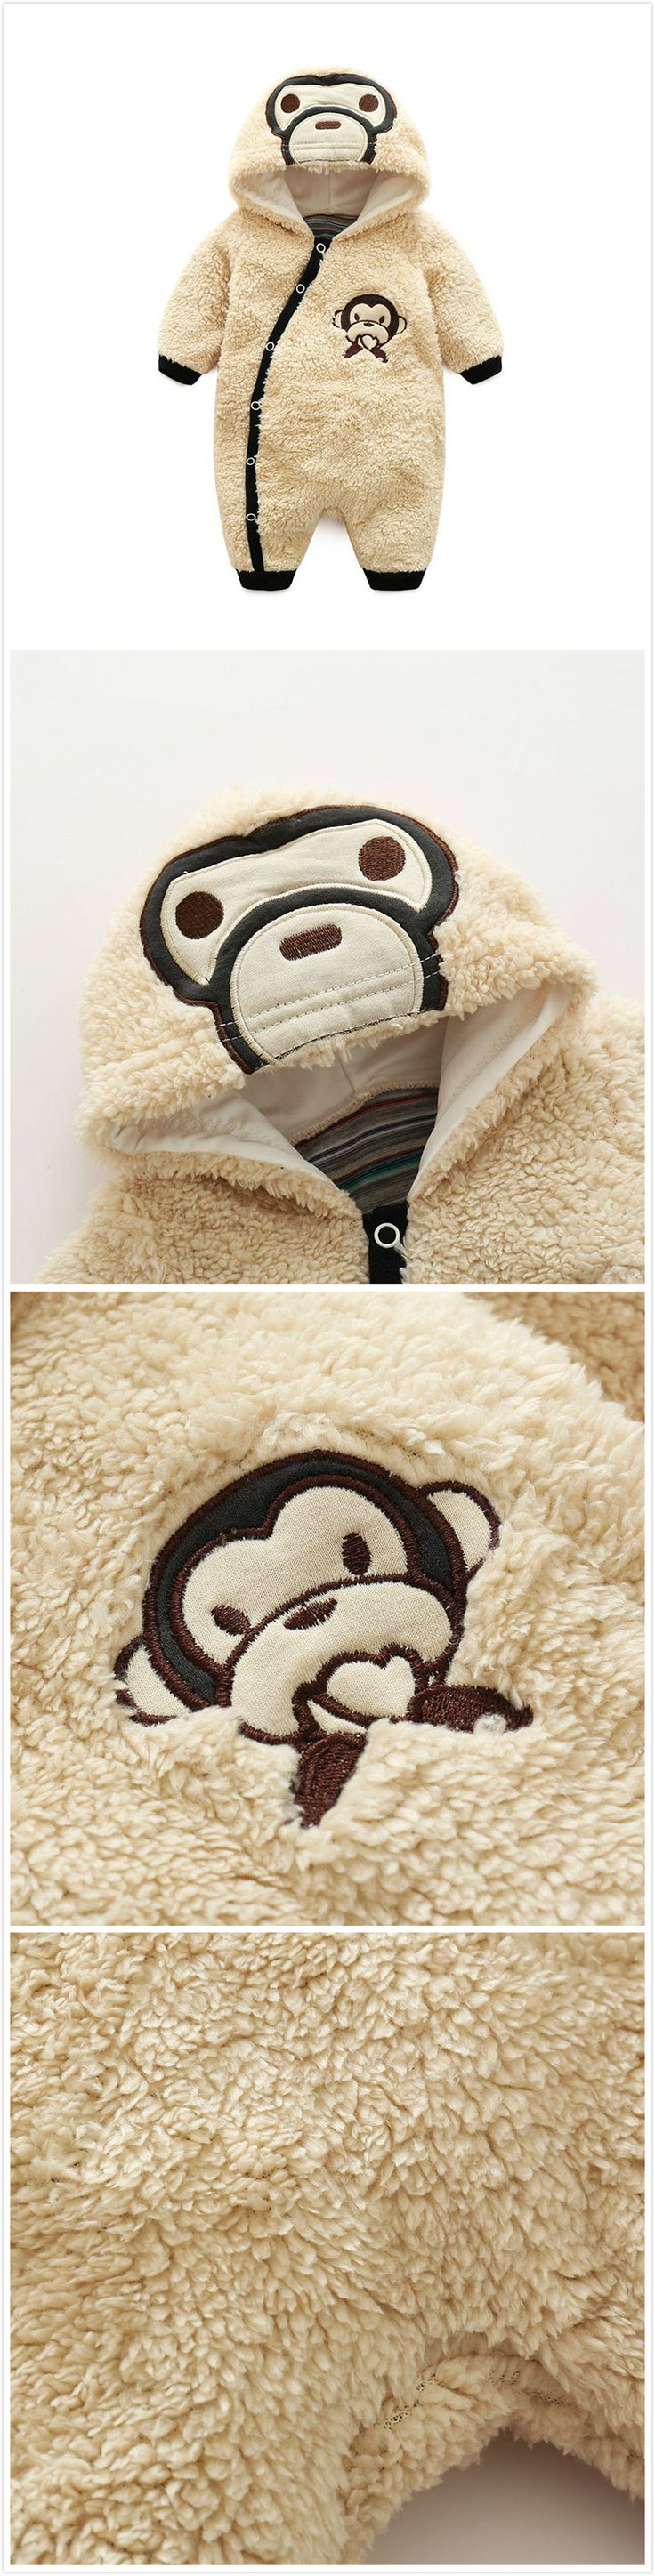 Cartoon Monkey Cashmere Baby Infant Toddler Boy Girl Hooded Winter Warm Jumpsuit Cloth Outfits